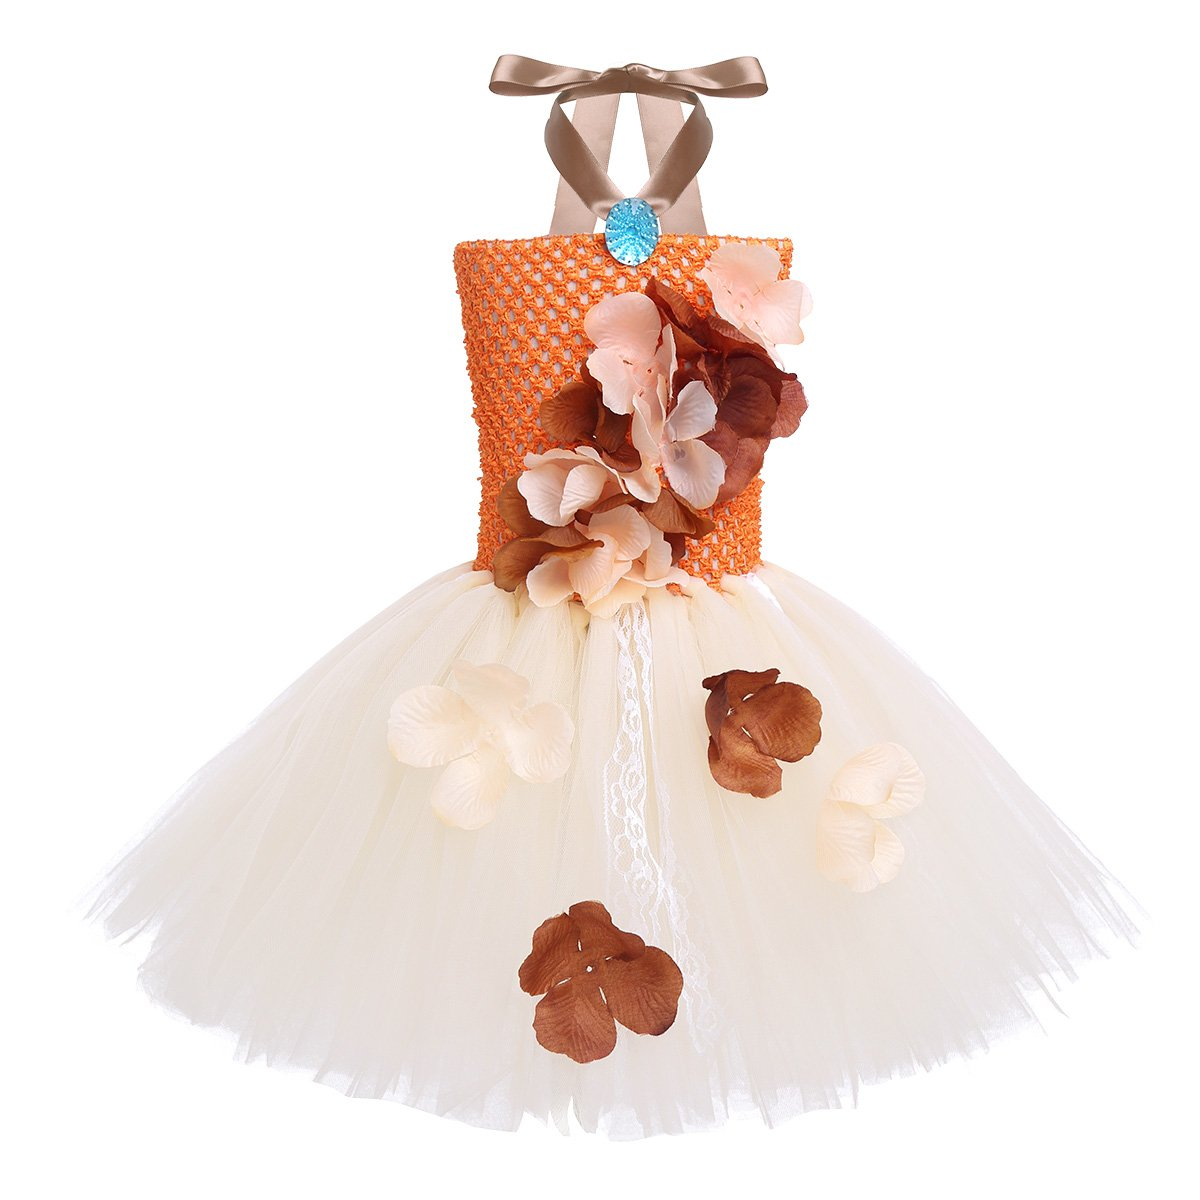 CHICTRY Princess Moana Dress Tutu Mesh Lace Party Gown Birthday Dress up for Toddler Kid Girls Orange&Beige 12